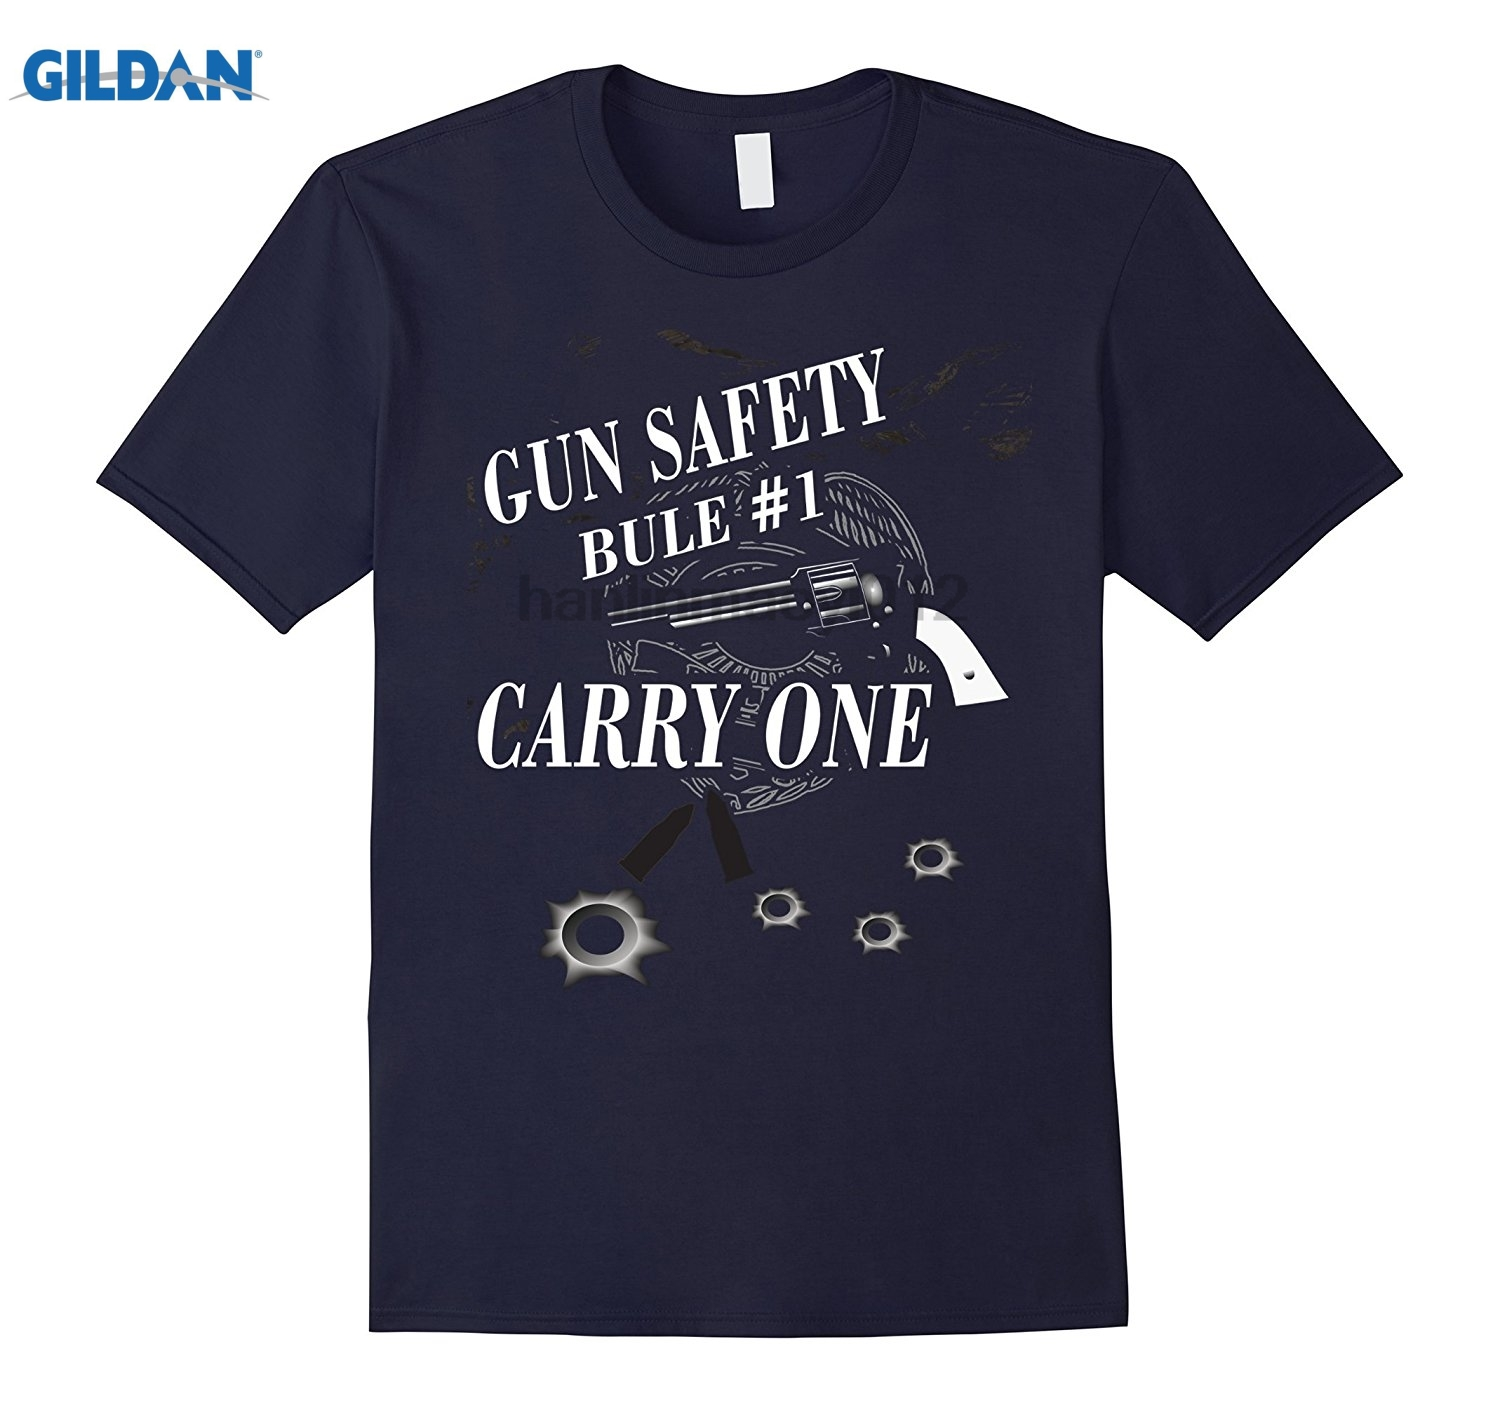 GILDAN Gun Safety Rule # 1 Carry One Novelty T-Shirt Dress female T-shirt ...